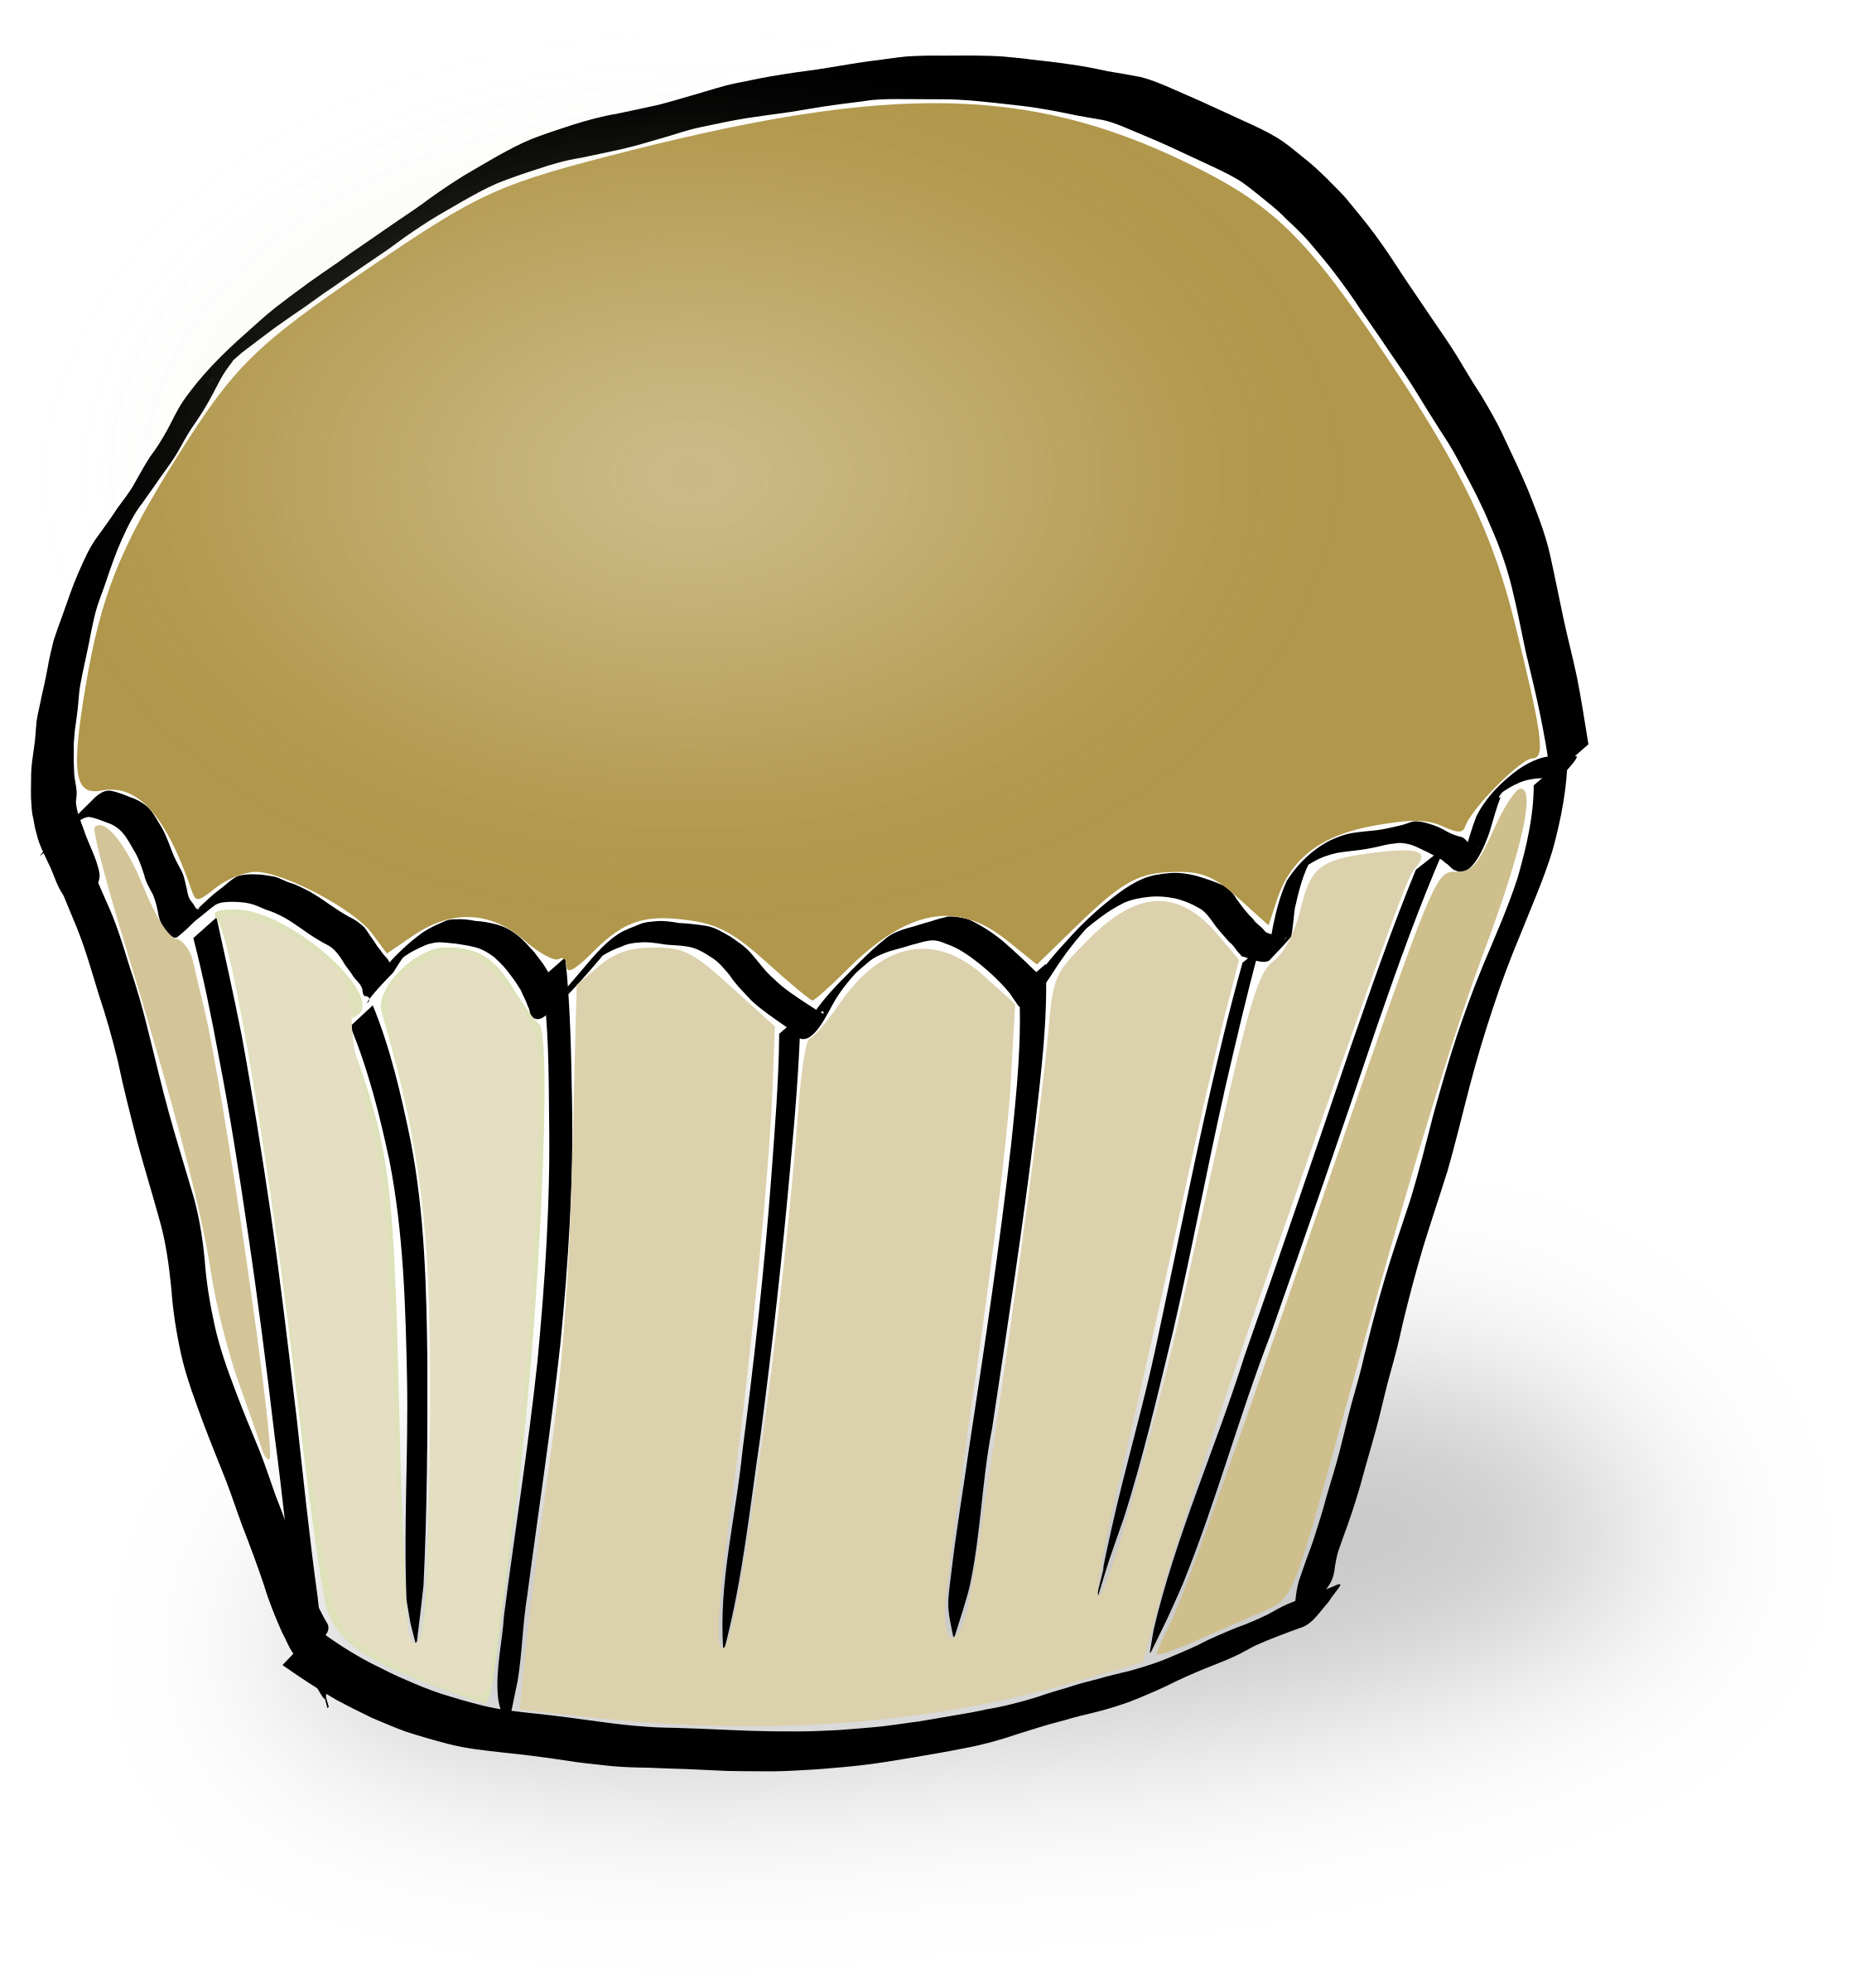 Muffin image png. Muffins clipart big cupcake